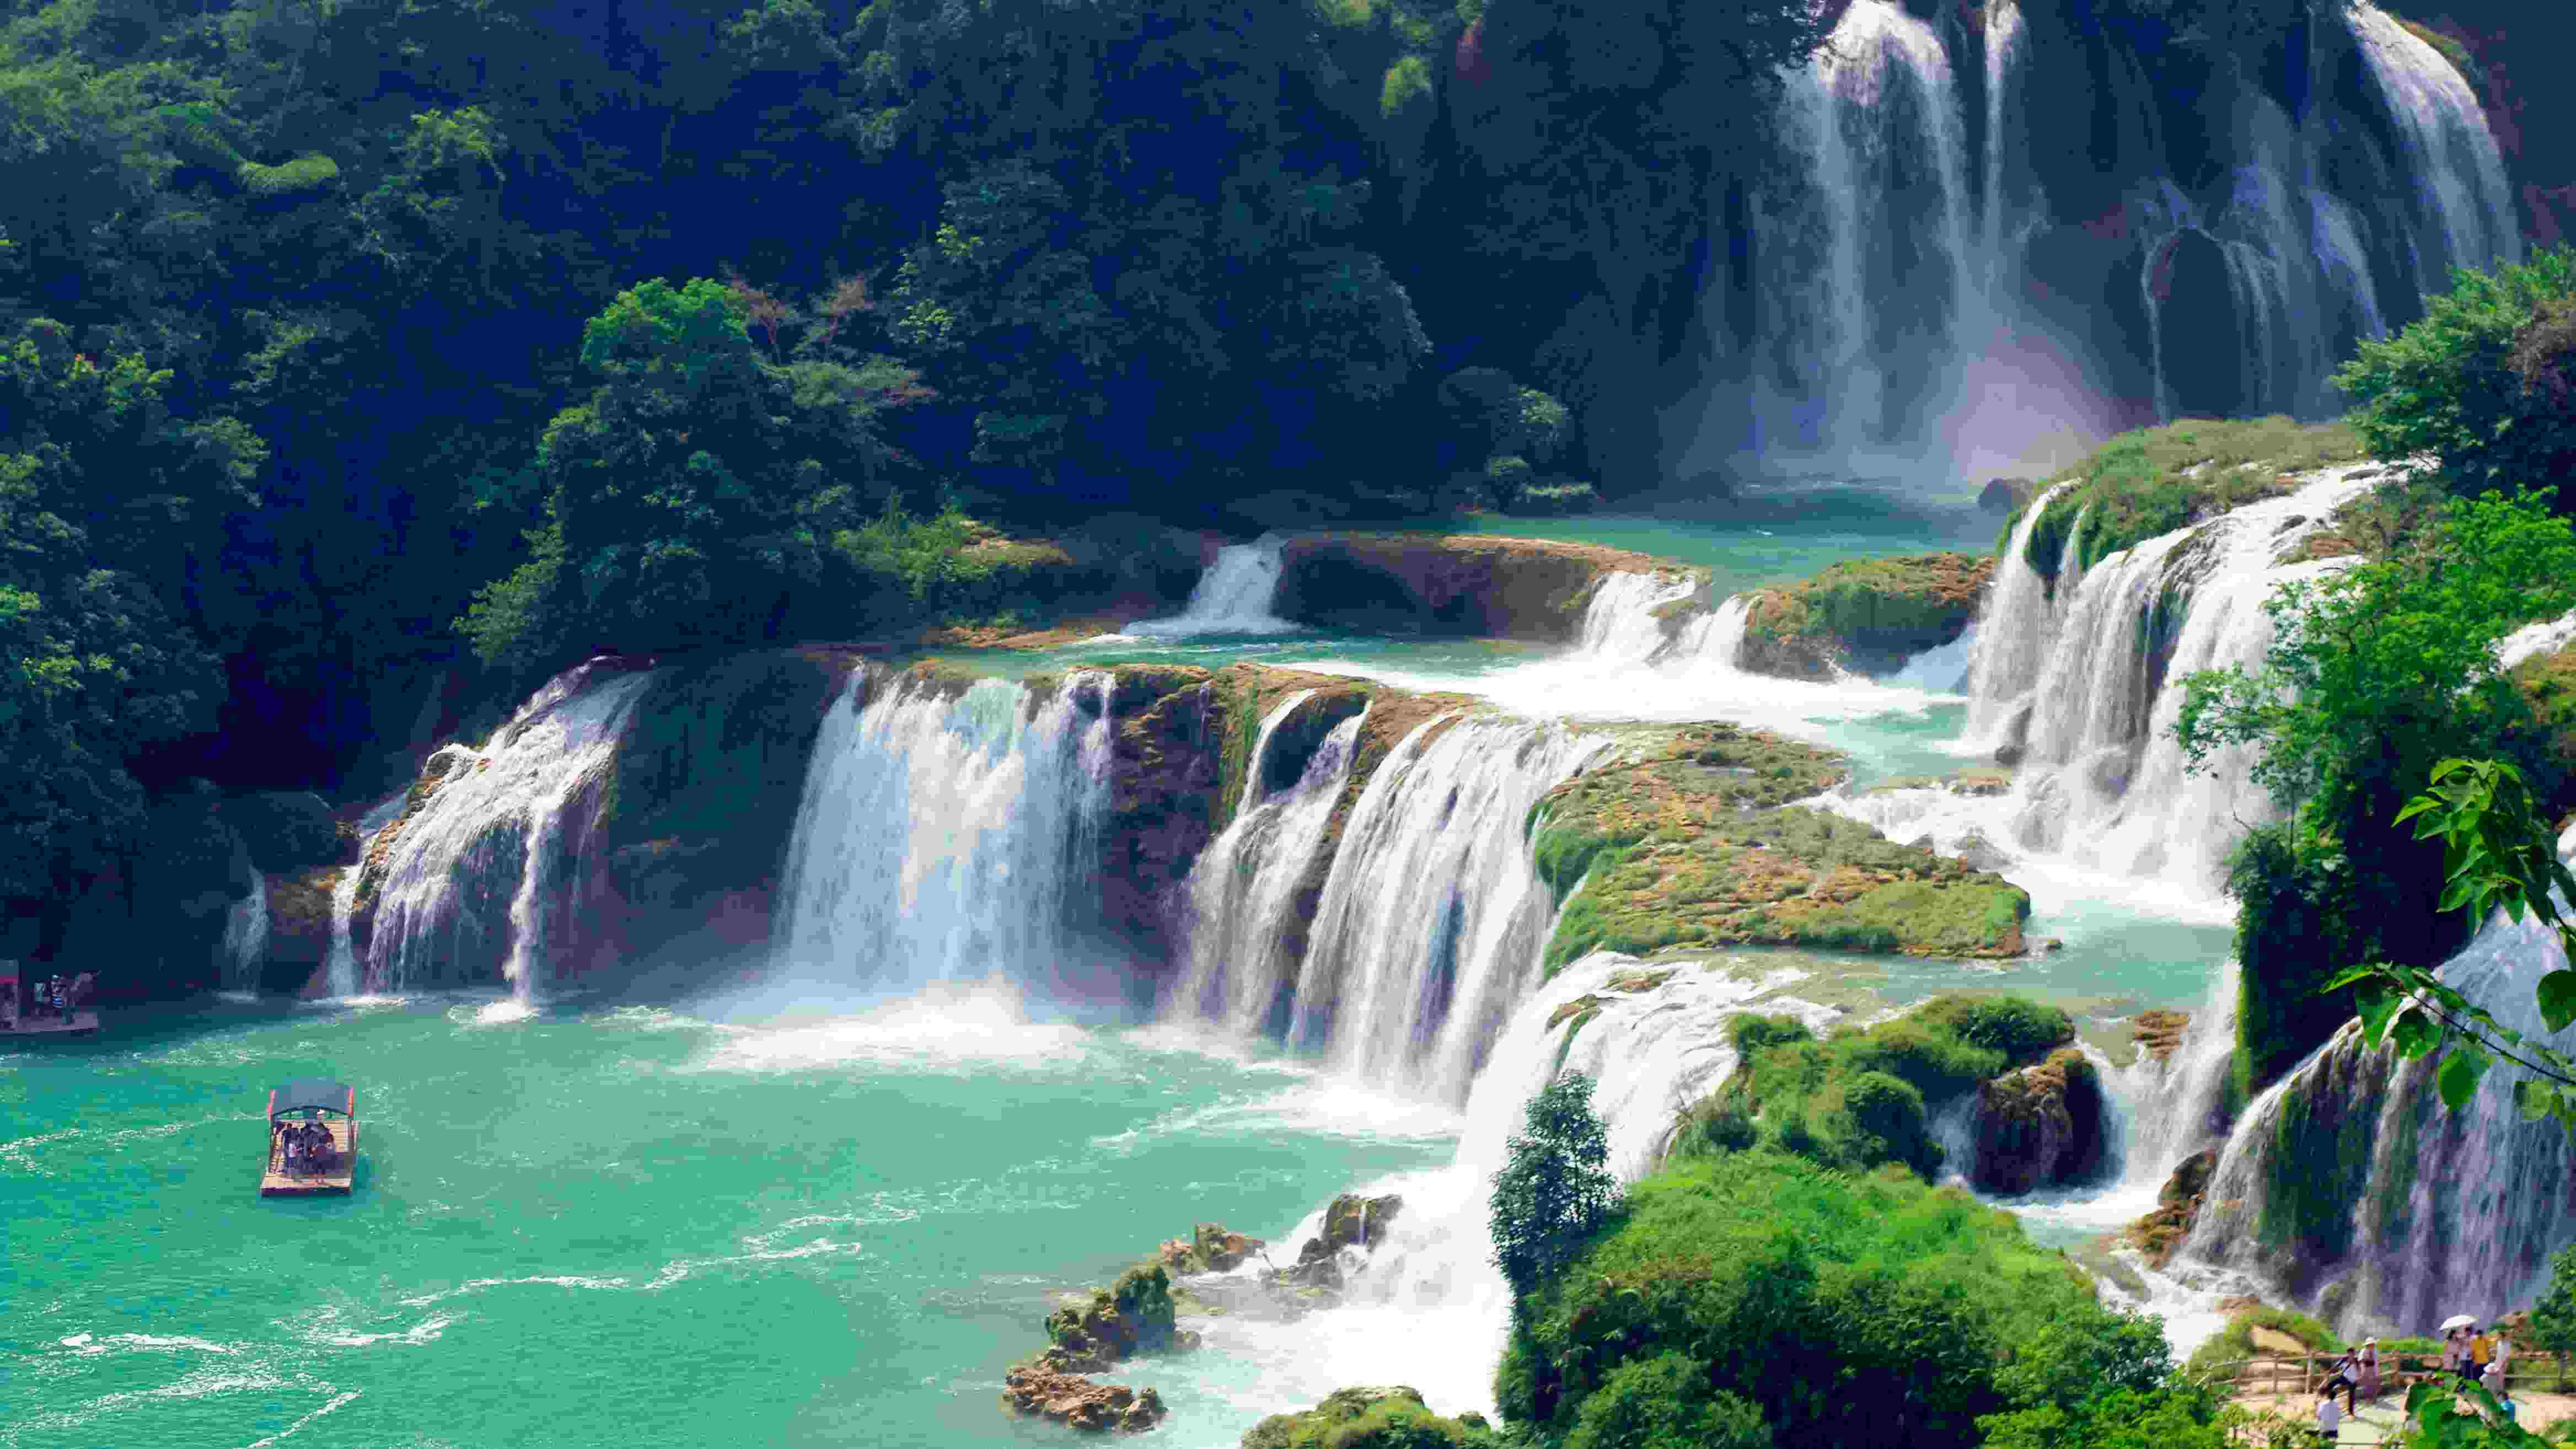 Border Waterfall A Magnet For Tourism